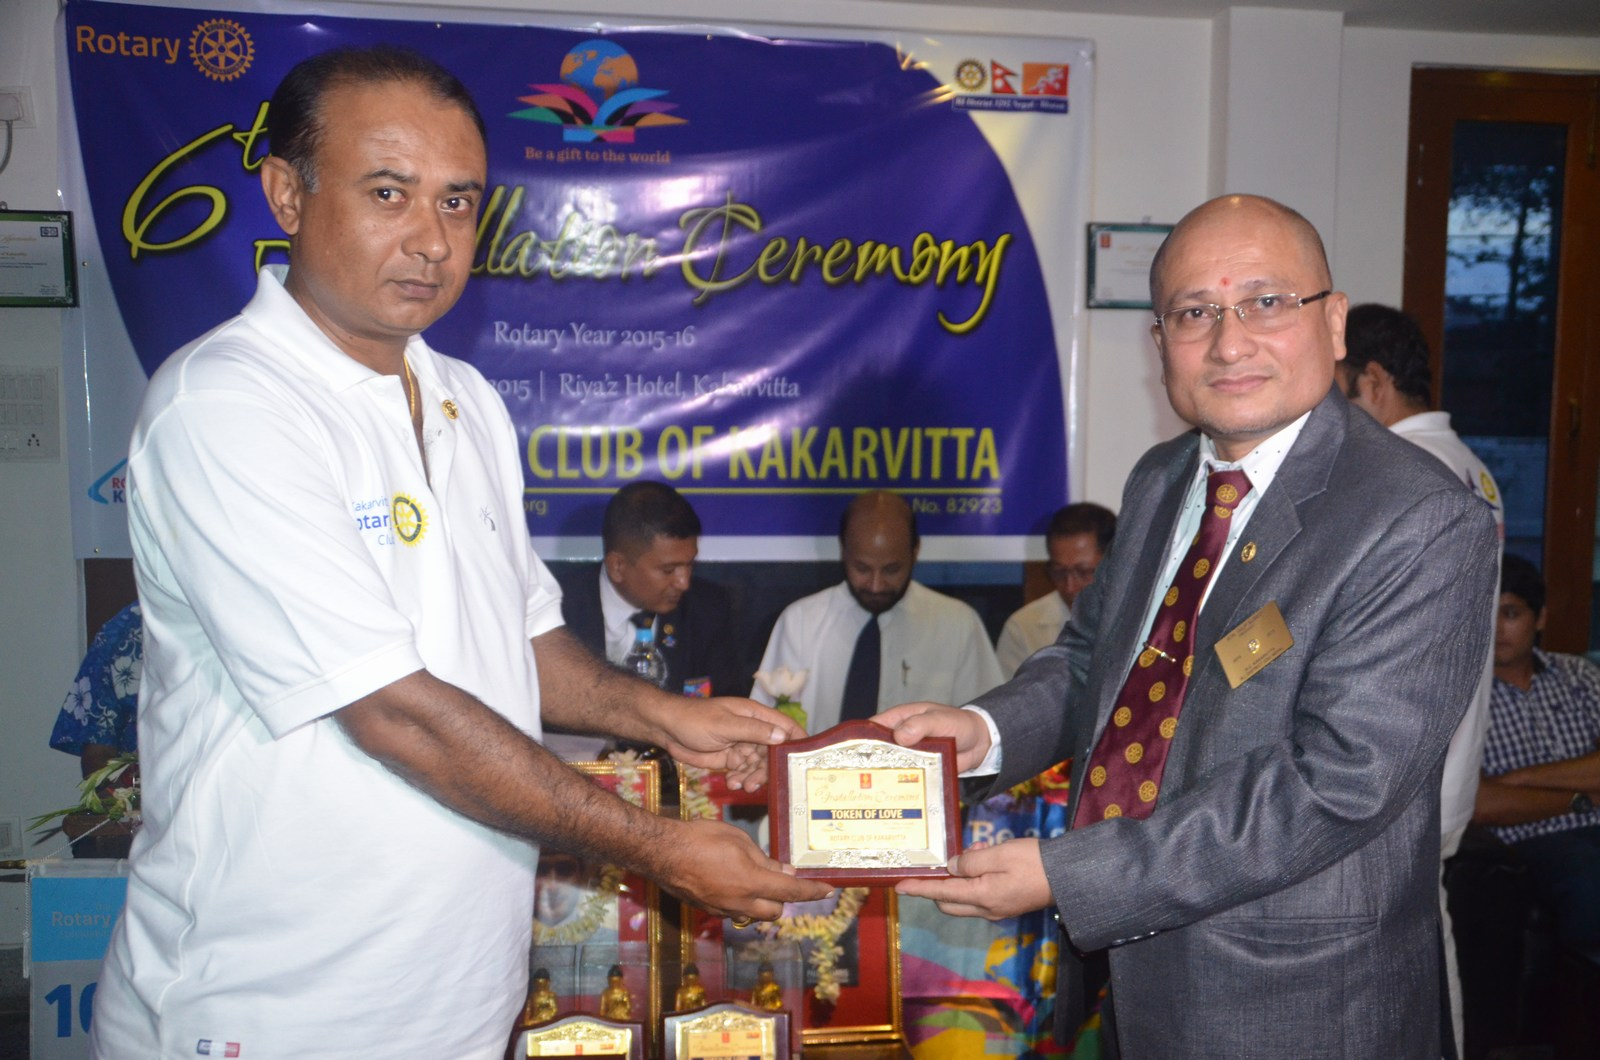 6th Installation Ceremony 2015 16 Rotary Club Of Kakarvitta 17